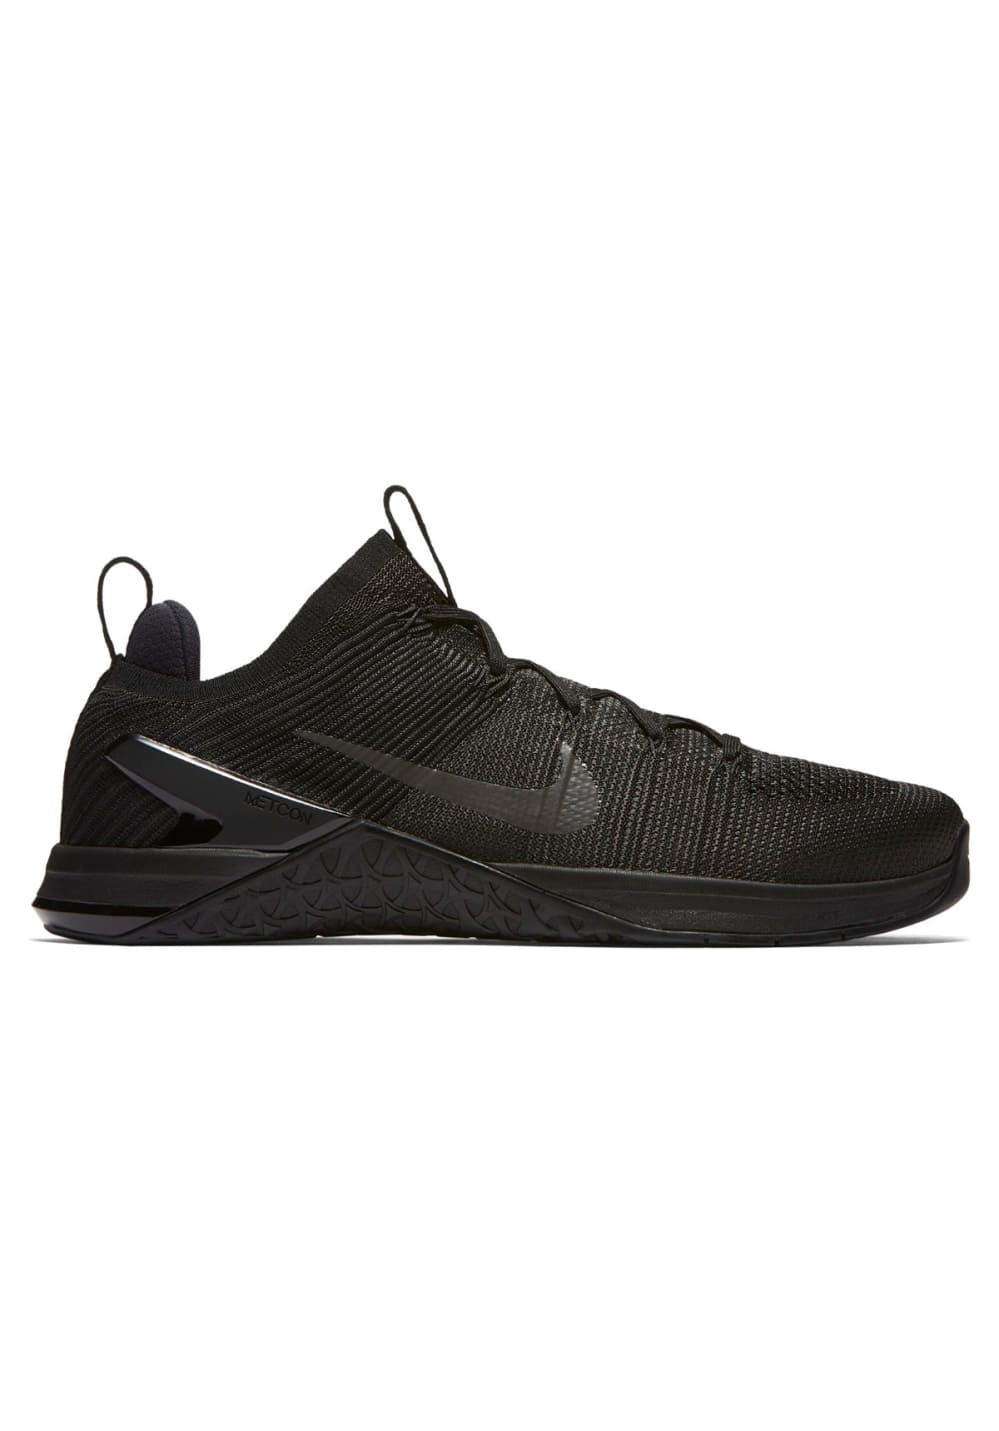 7853c9221fc Nike Metcon DSX Flyknit 2 - Fitness shoes for Men - Black